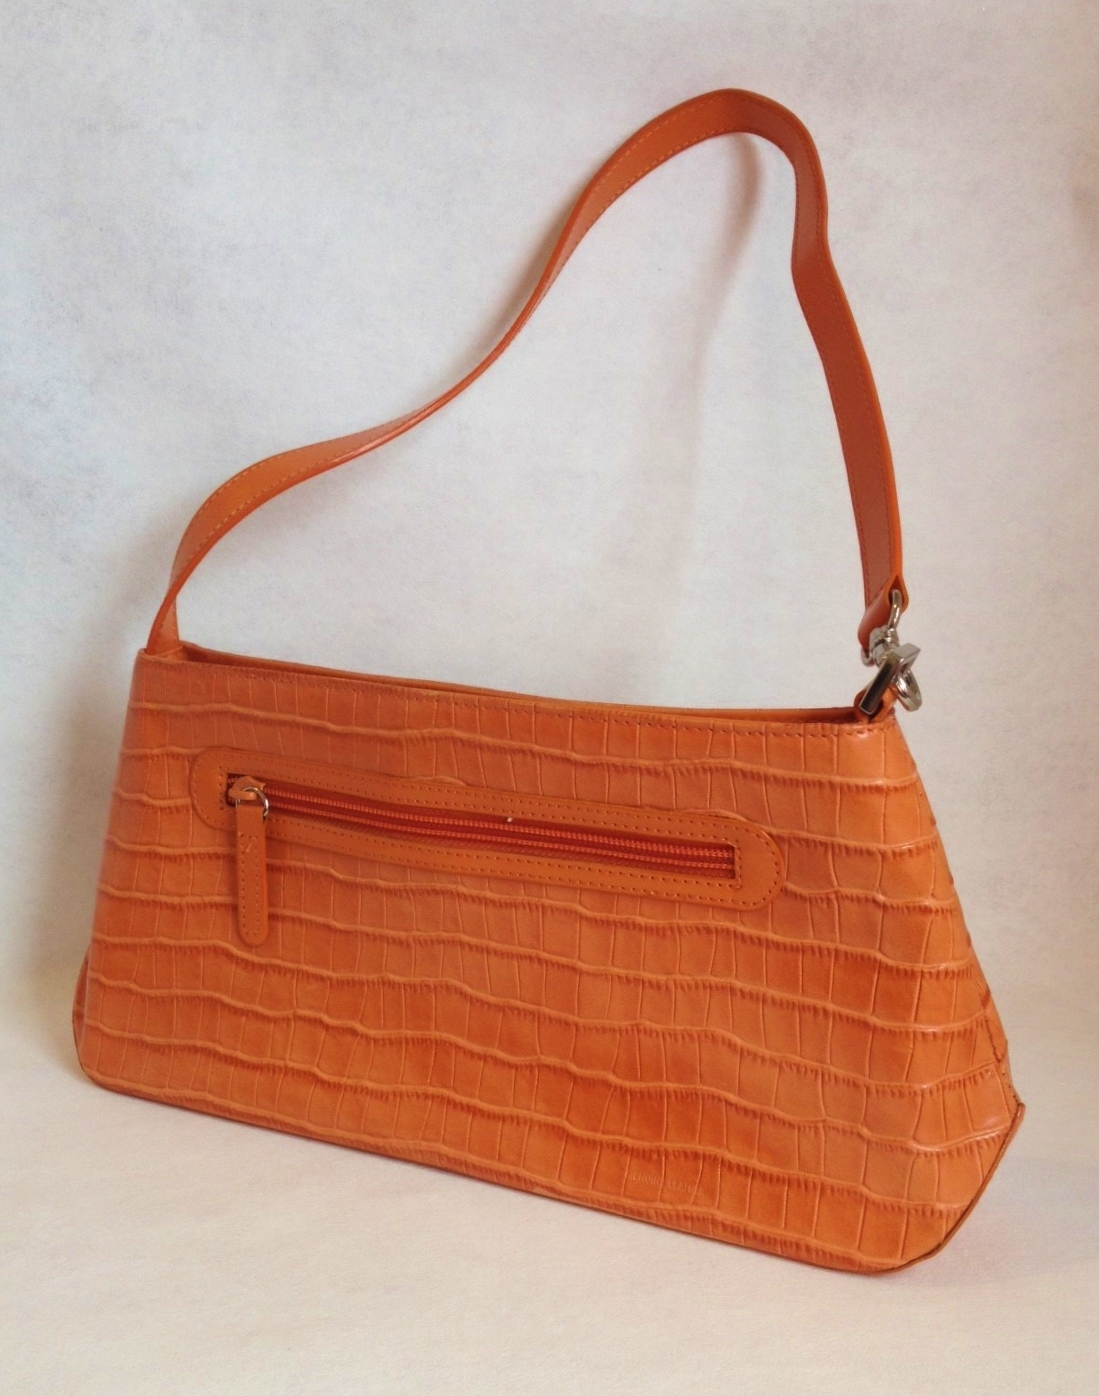 Primary image for Orange Genuine Leather Handbag Purse Faux Crocodile Lined Tote Pockets